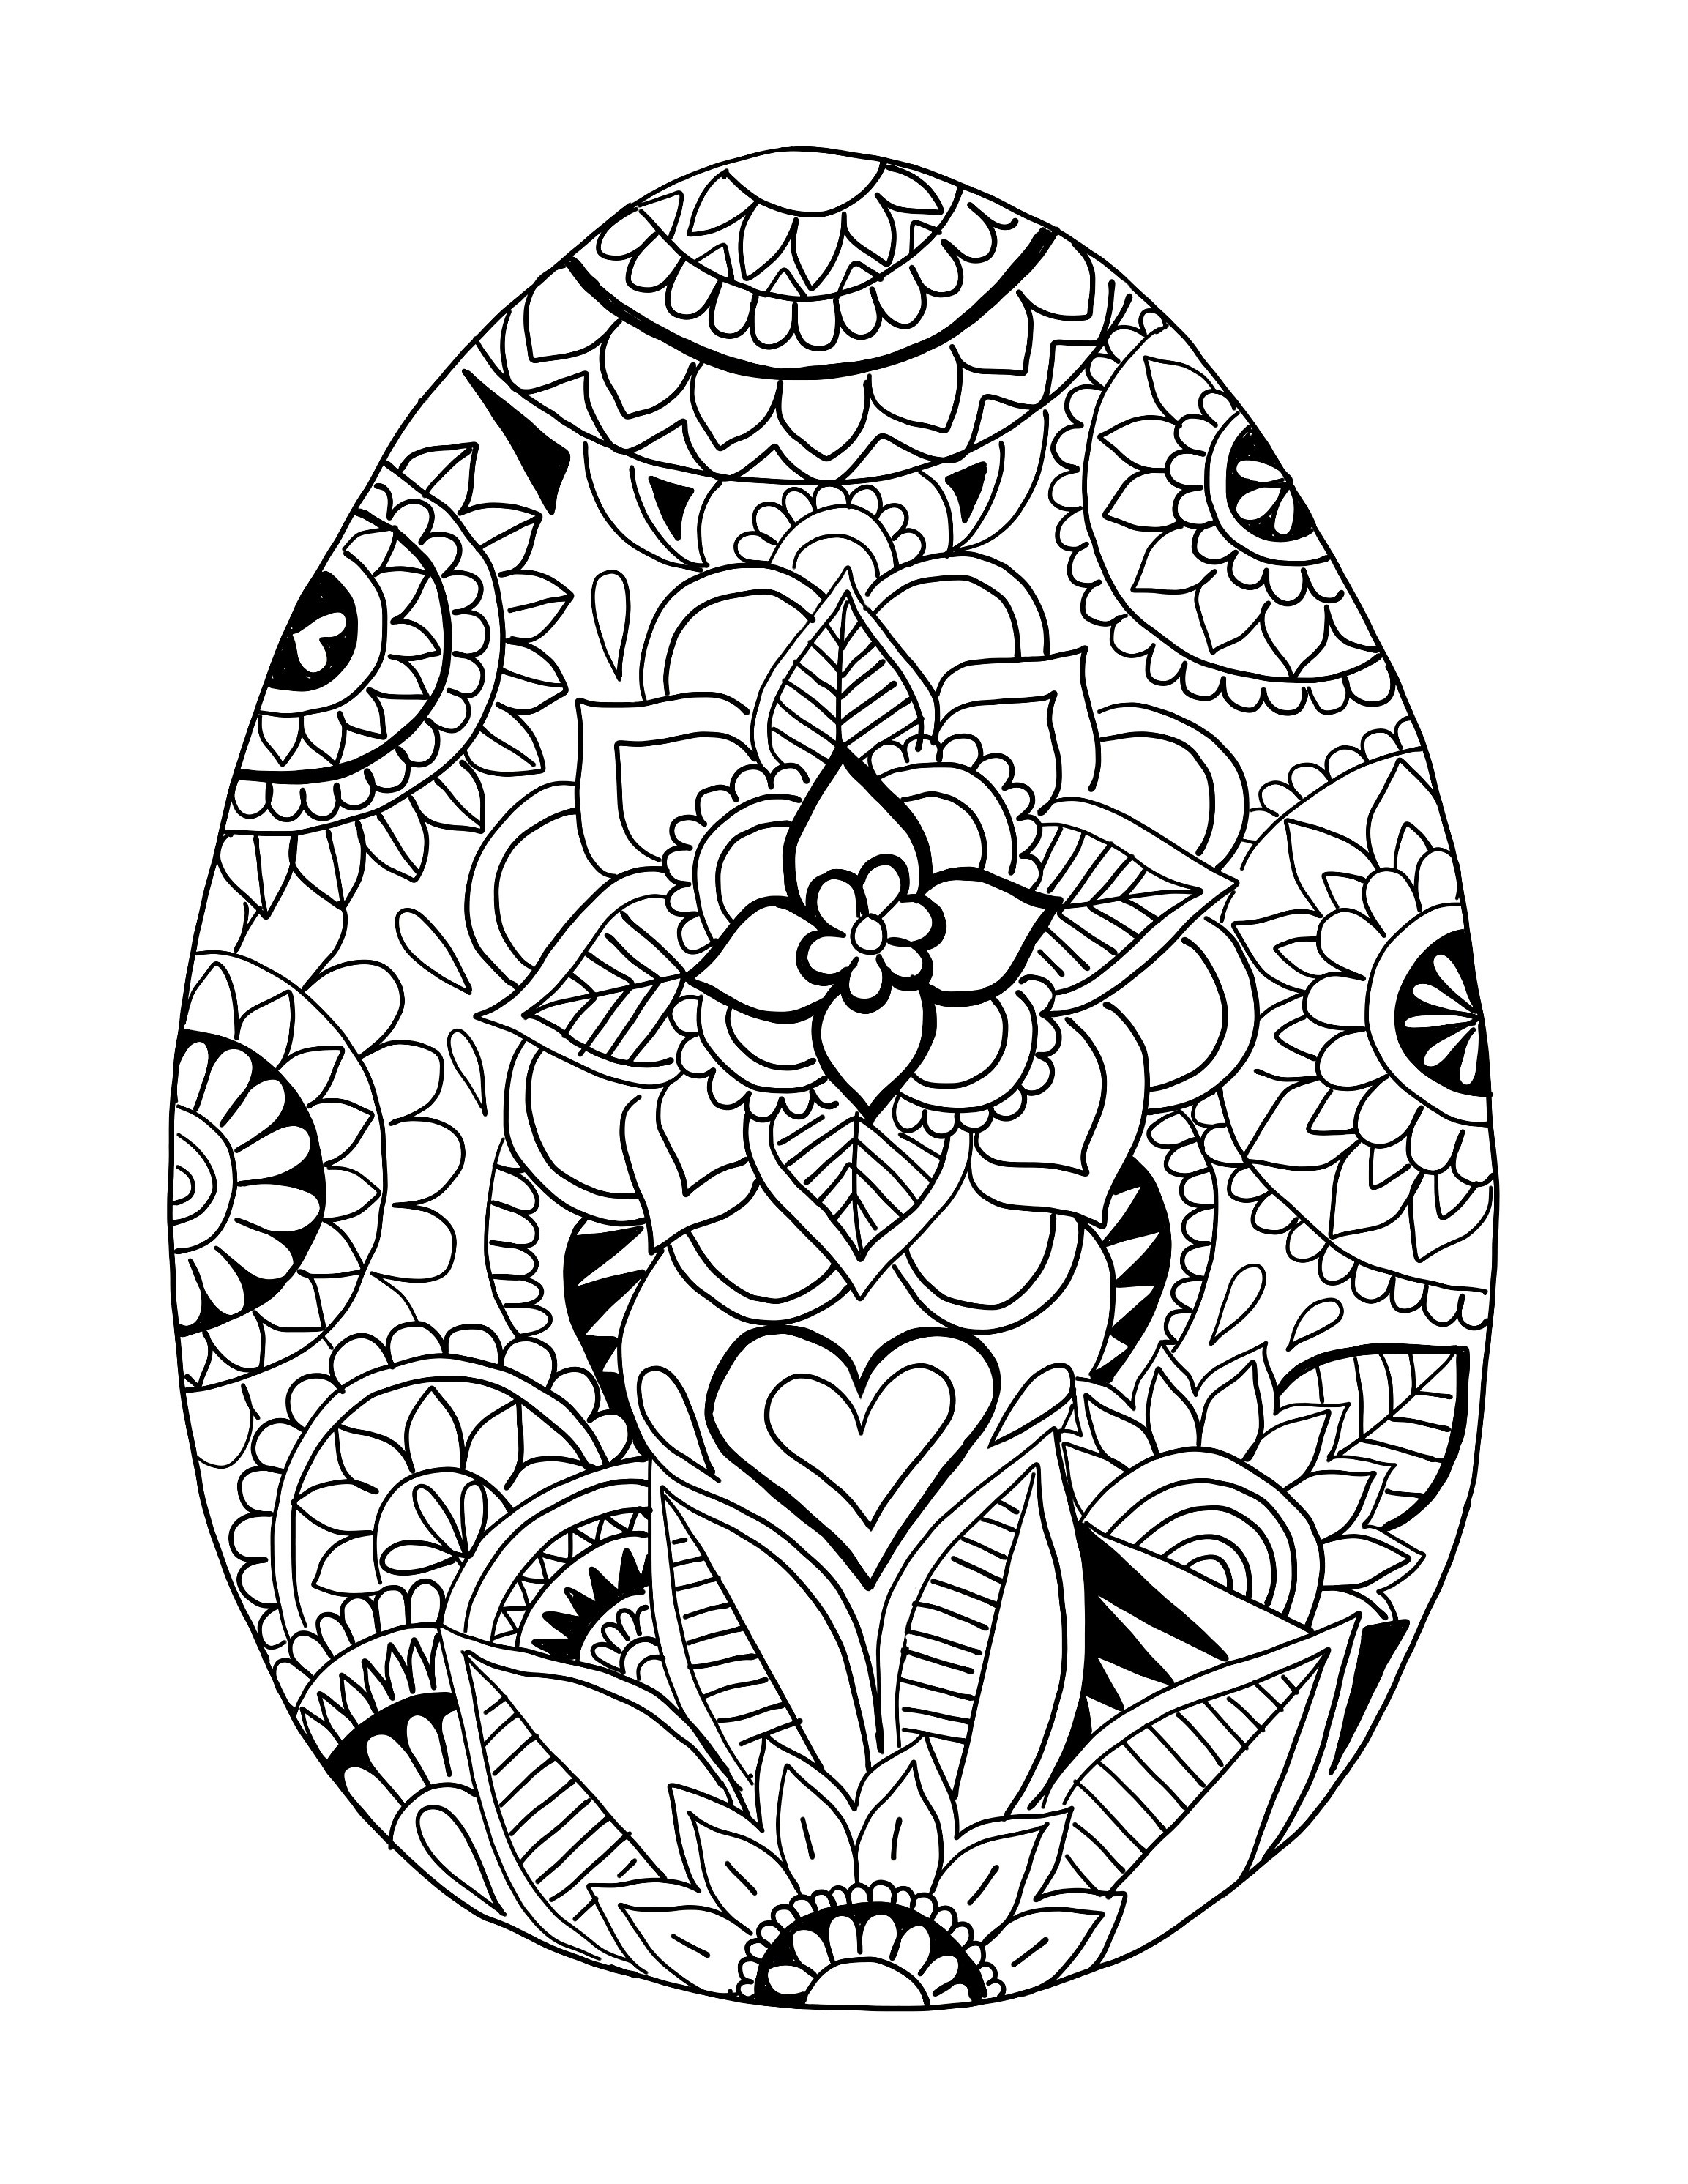 Best ideas about Easter Egg Free Coloring Sheets . Save or Pin Easter Egg Printable Coloring Page Now.